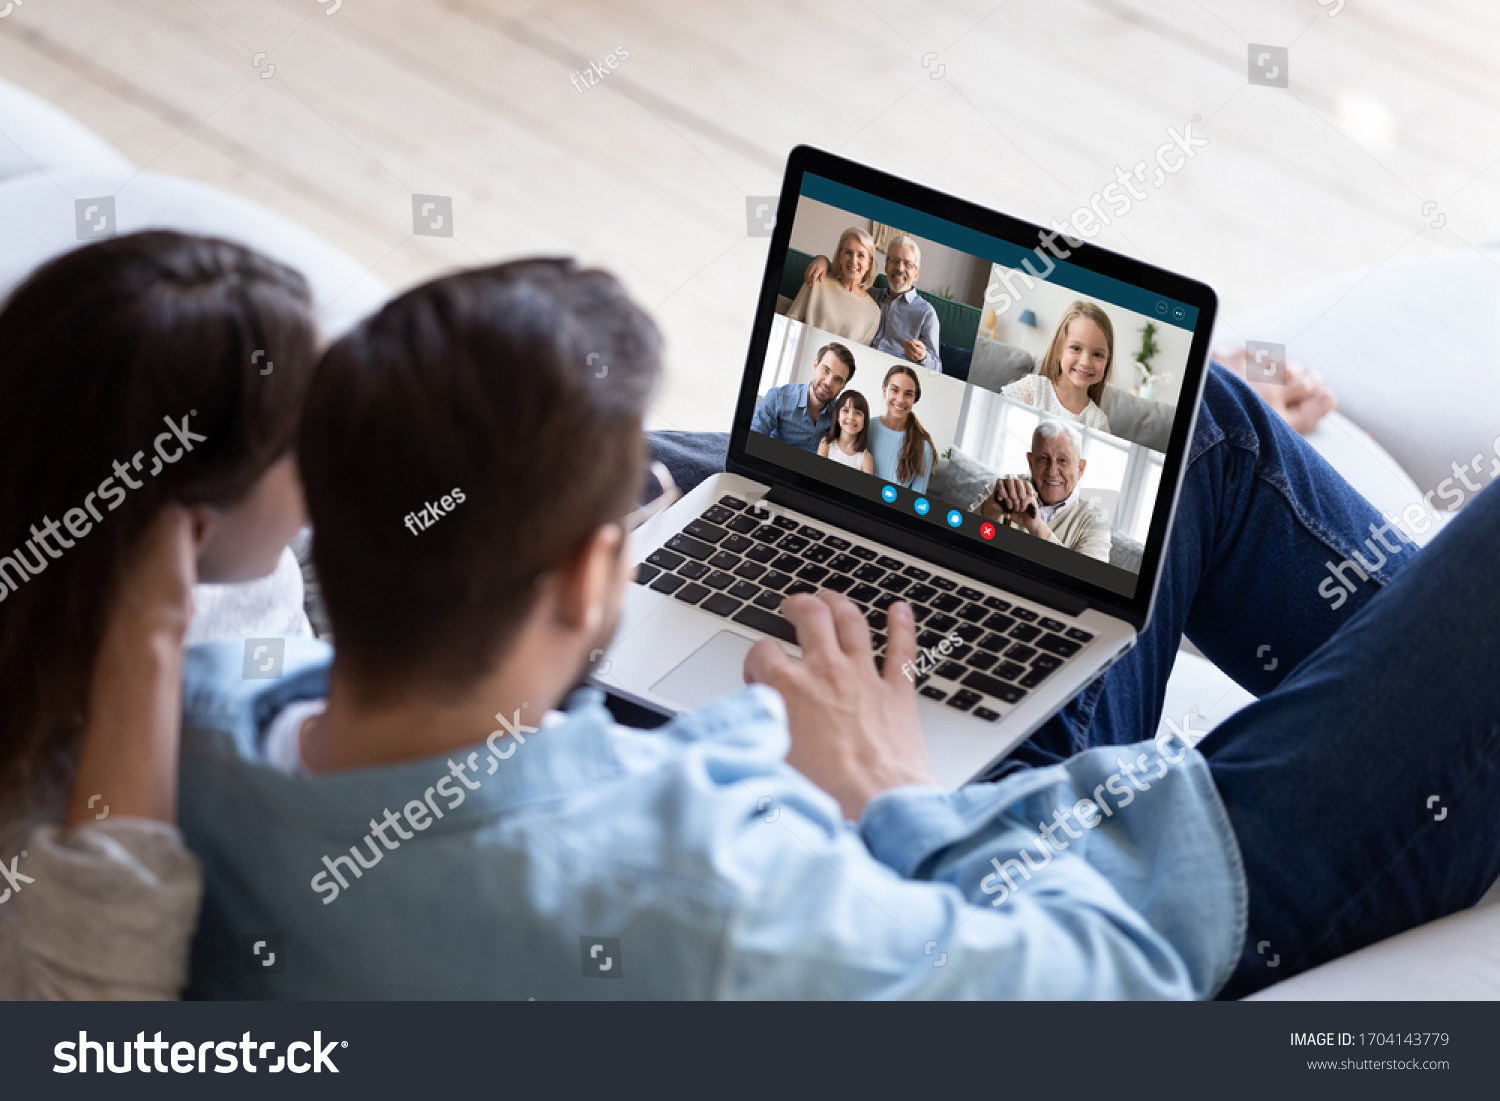 Rear back view married couple resting and chatting with relatives via videoconference videocall application, laptop screen view over spouse shoulder. Distant virtual communication, modern tech concept #1704143779